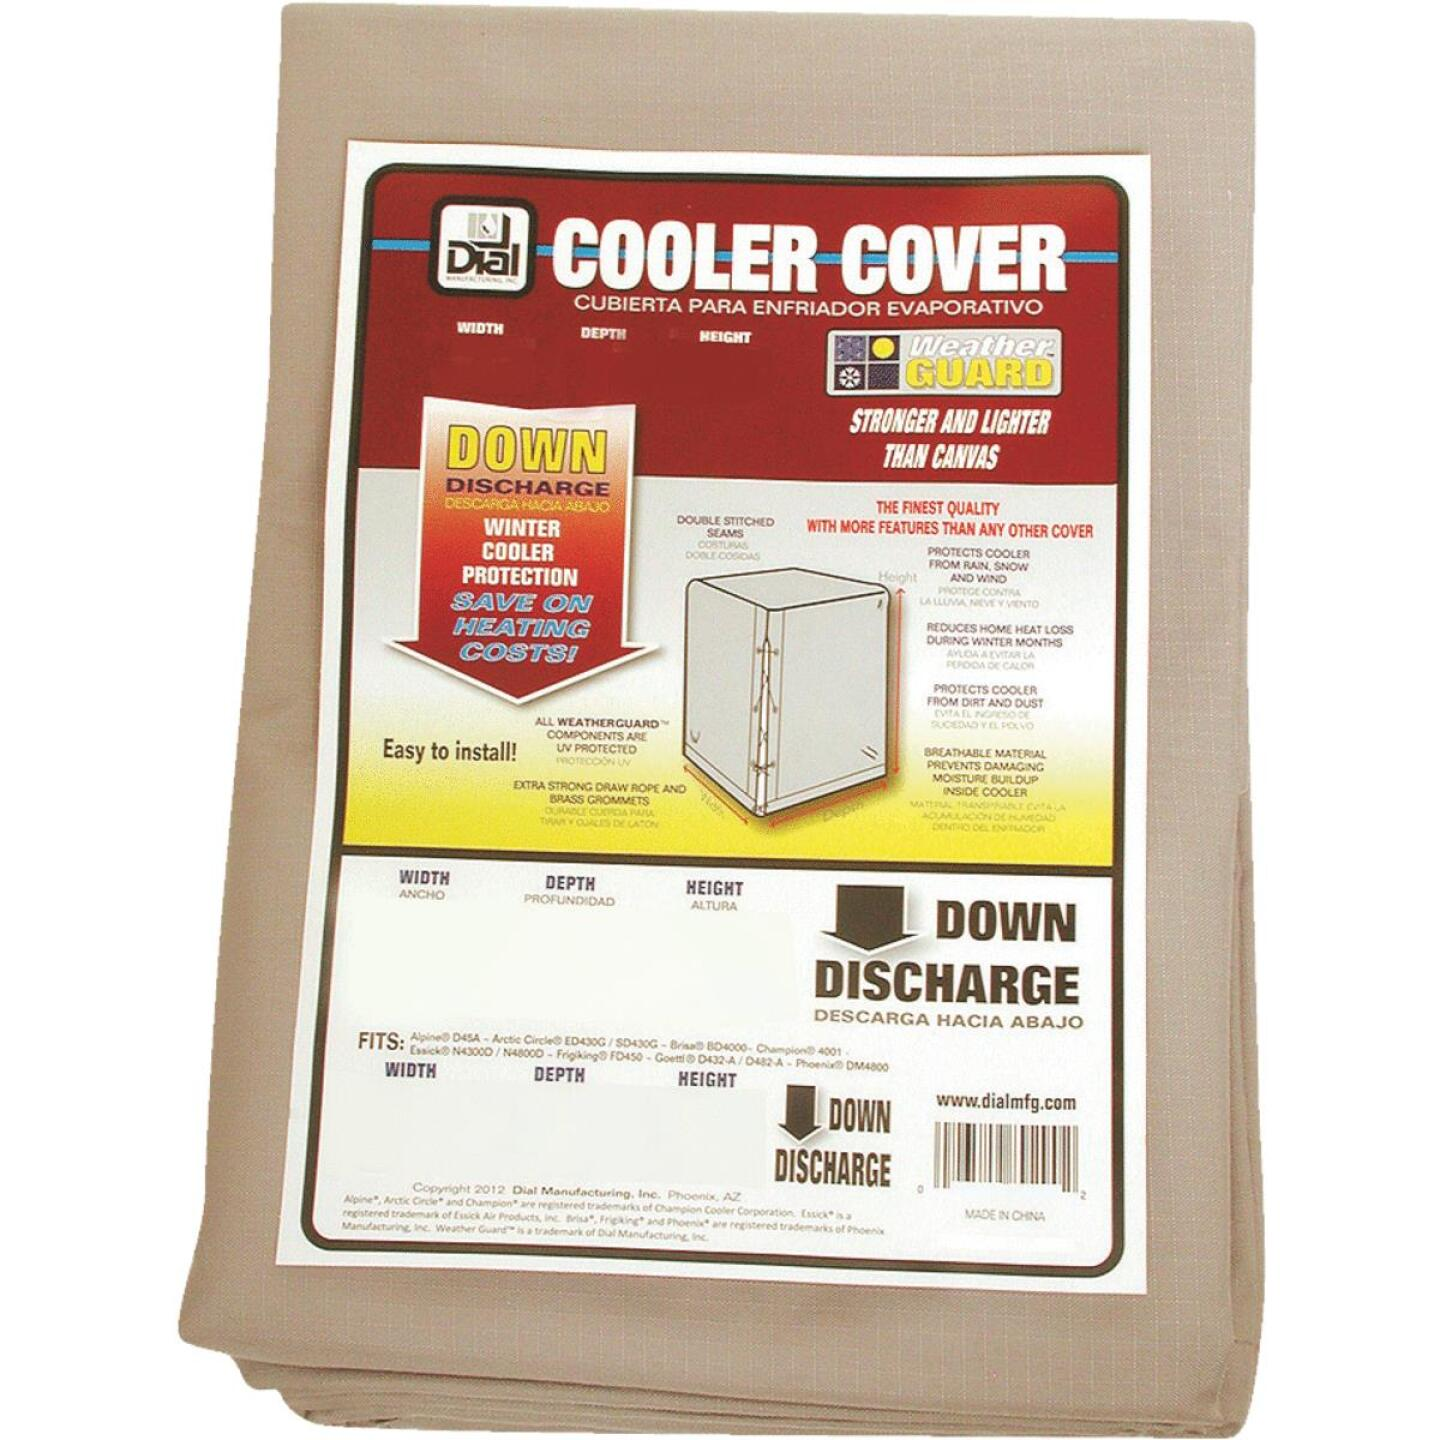 Dial 34 In. W x 34 In. D x 36 In. H Polyester Evaporative Cooler Cover, Down Discharge Image 1